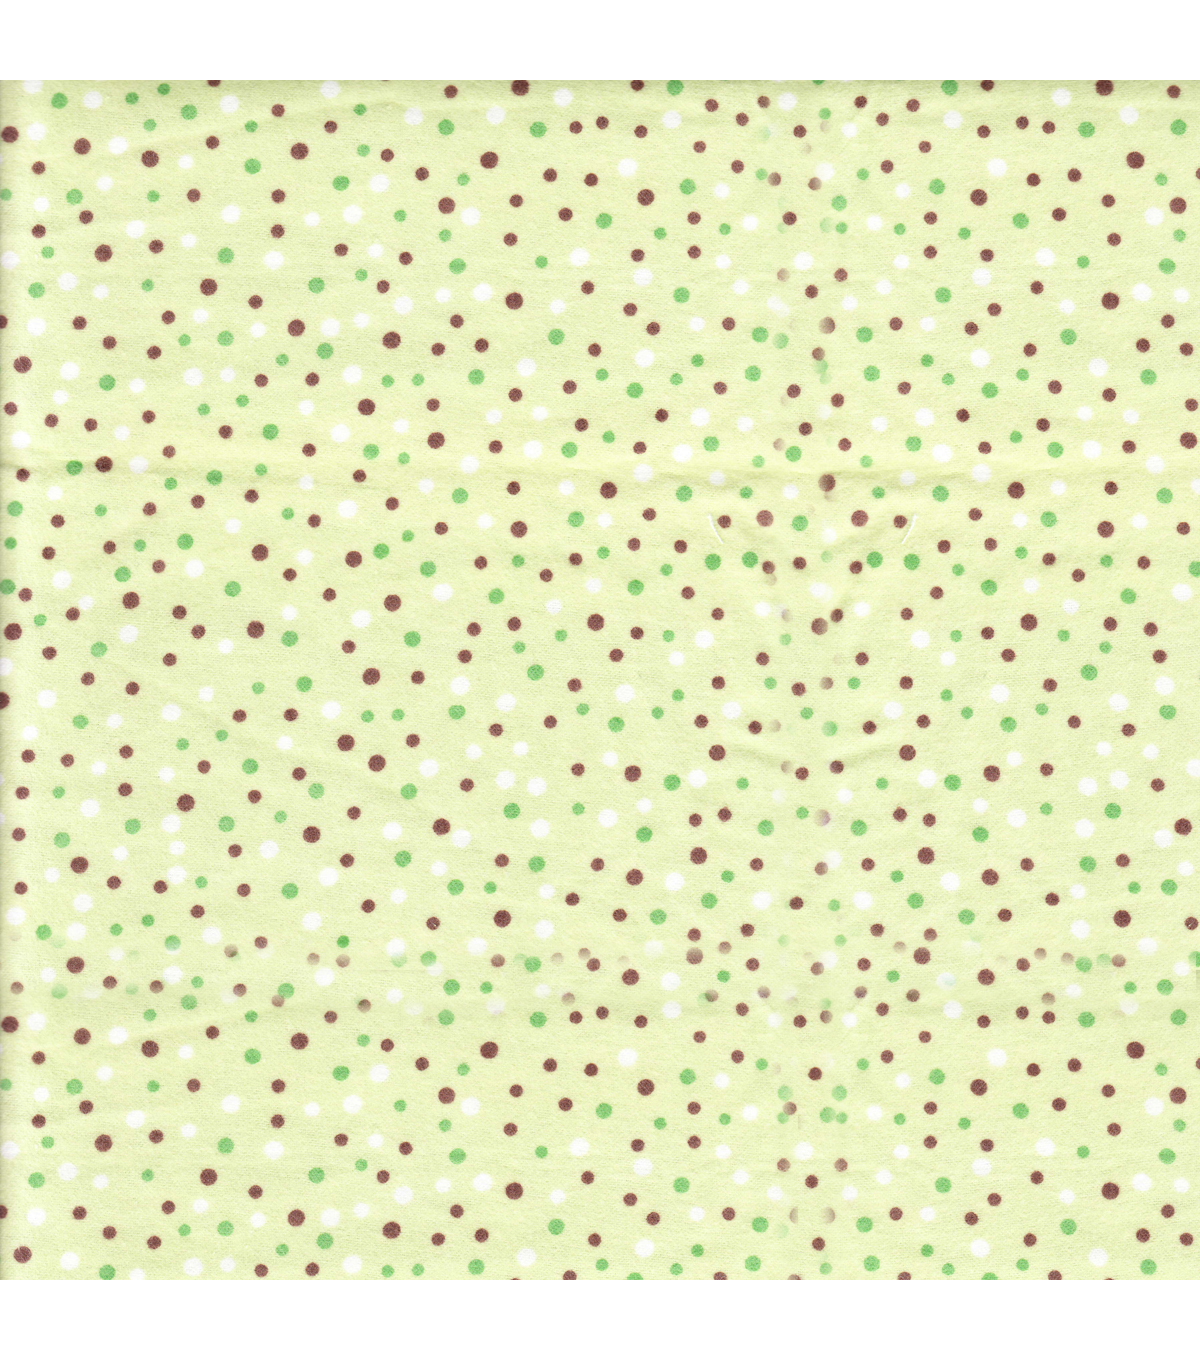 Snuggle Flannel Fabric -Green, Brown & White Dots